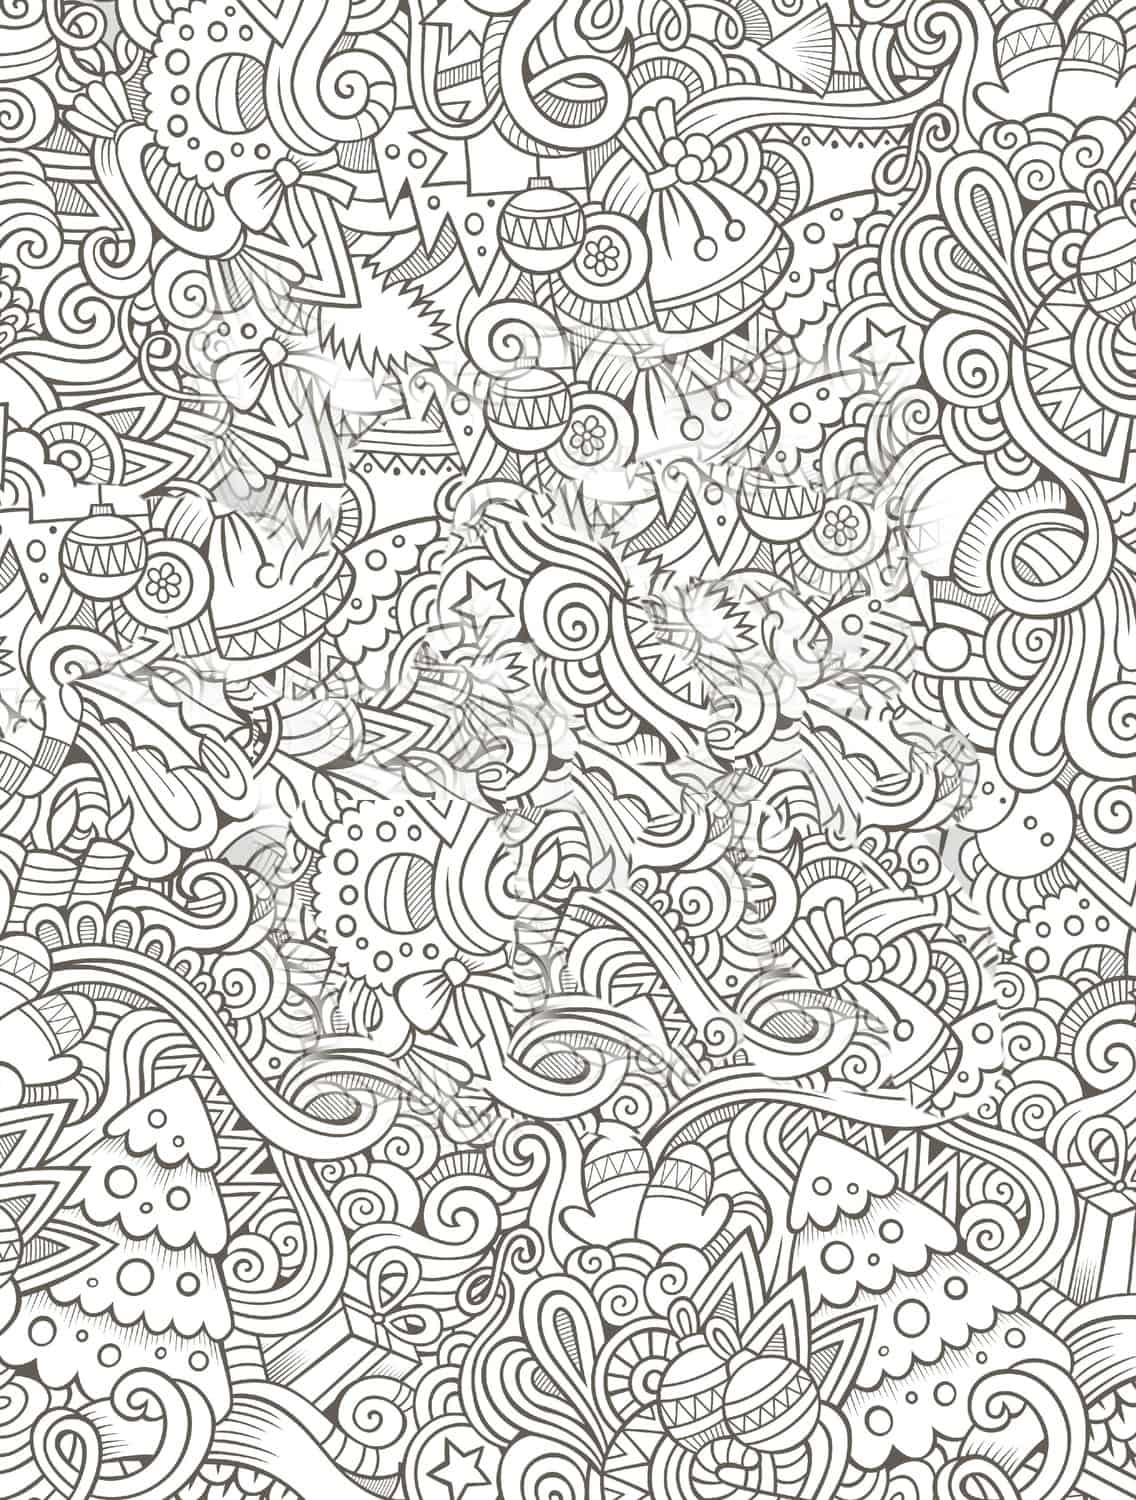 busy coloring page for free christmas gift small - Printable Christmas Coloring Pages